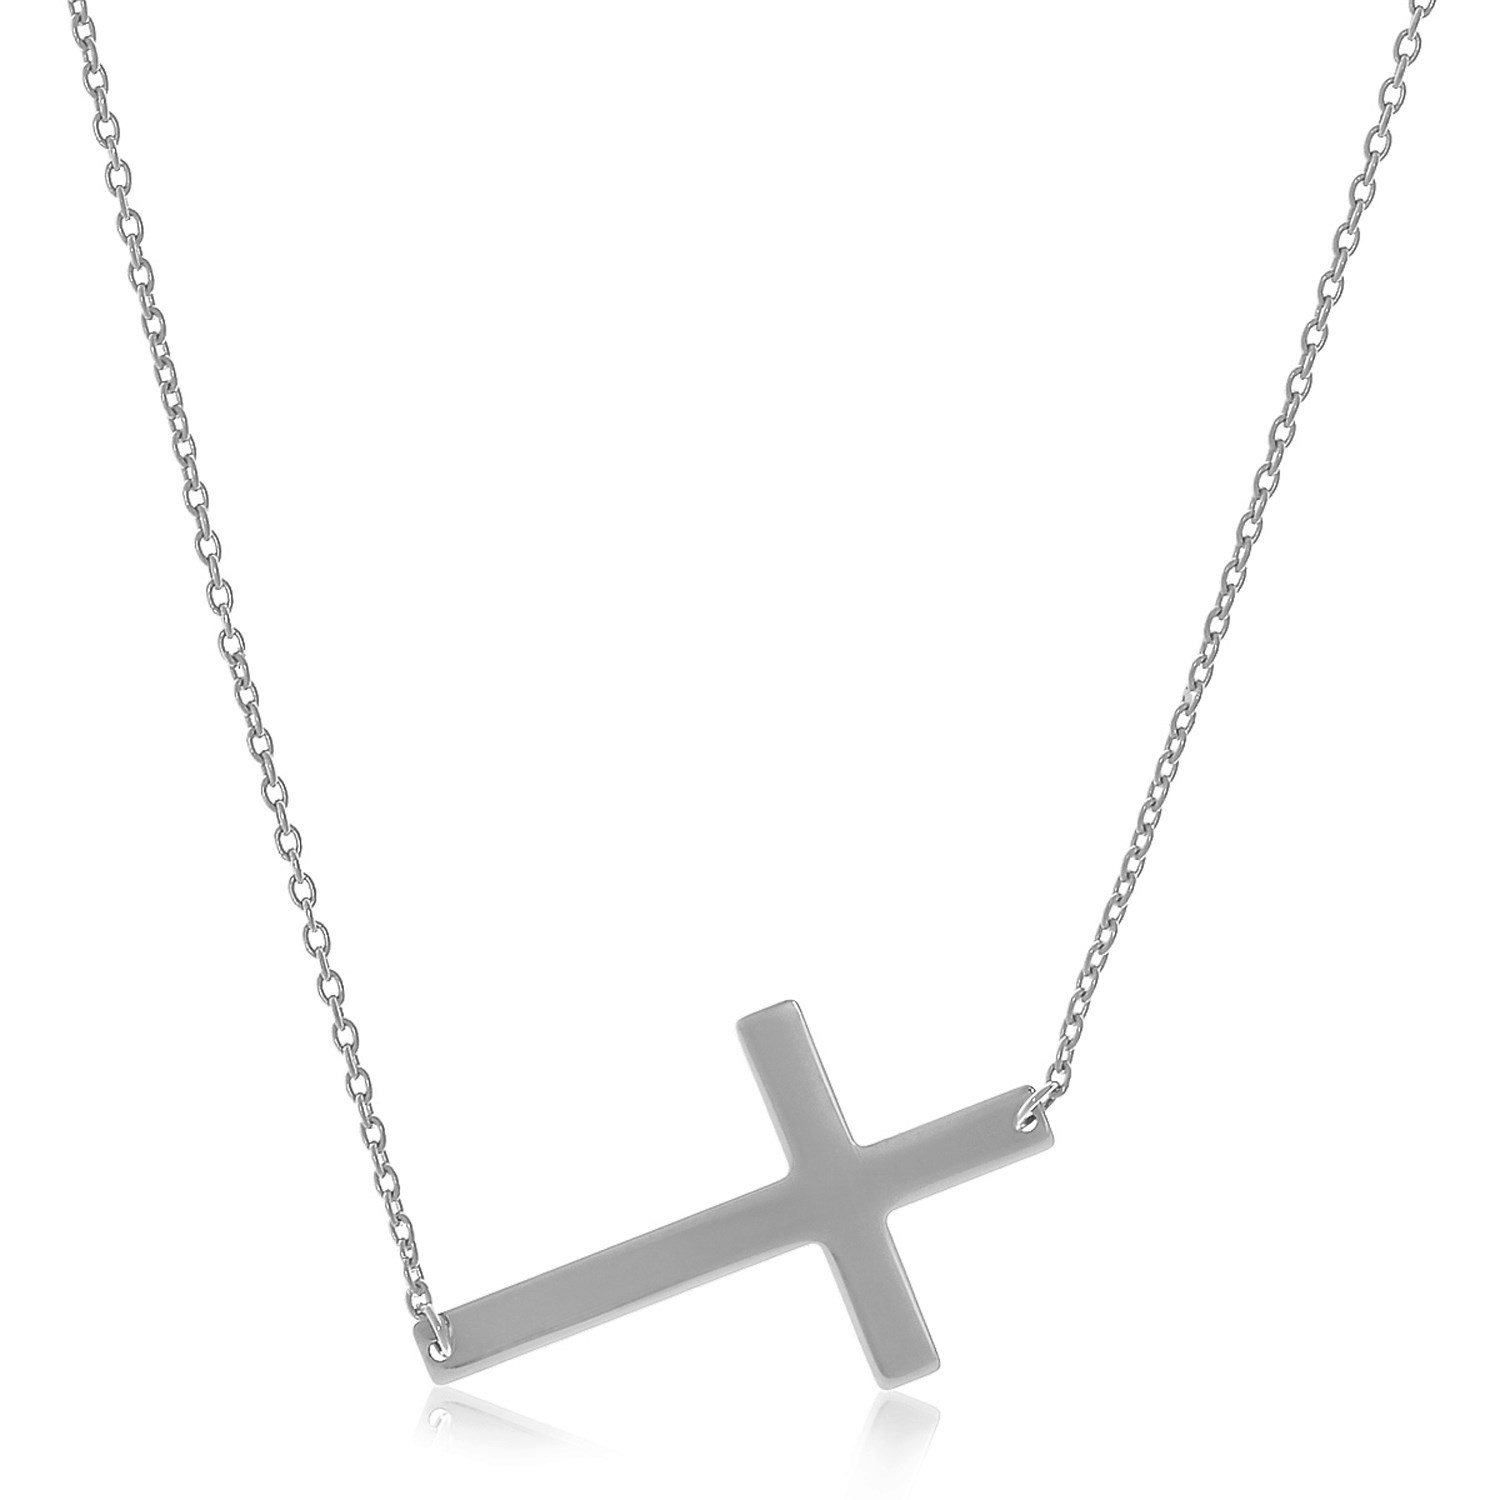 Flat Crucifix Necklace in 14K White Gold - Richard Cannon ...